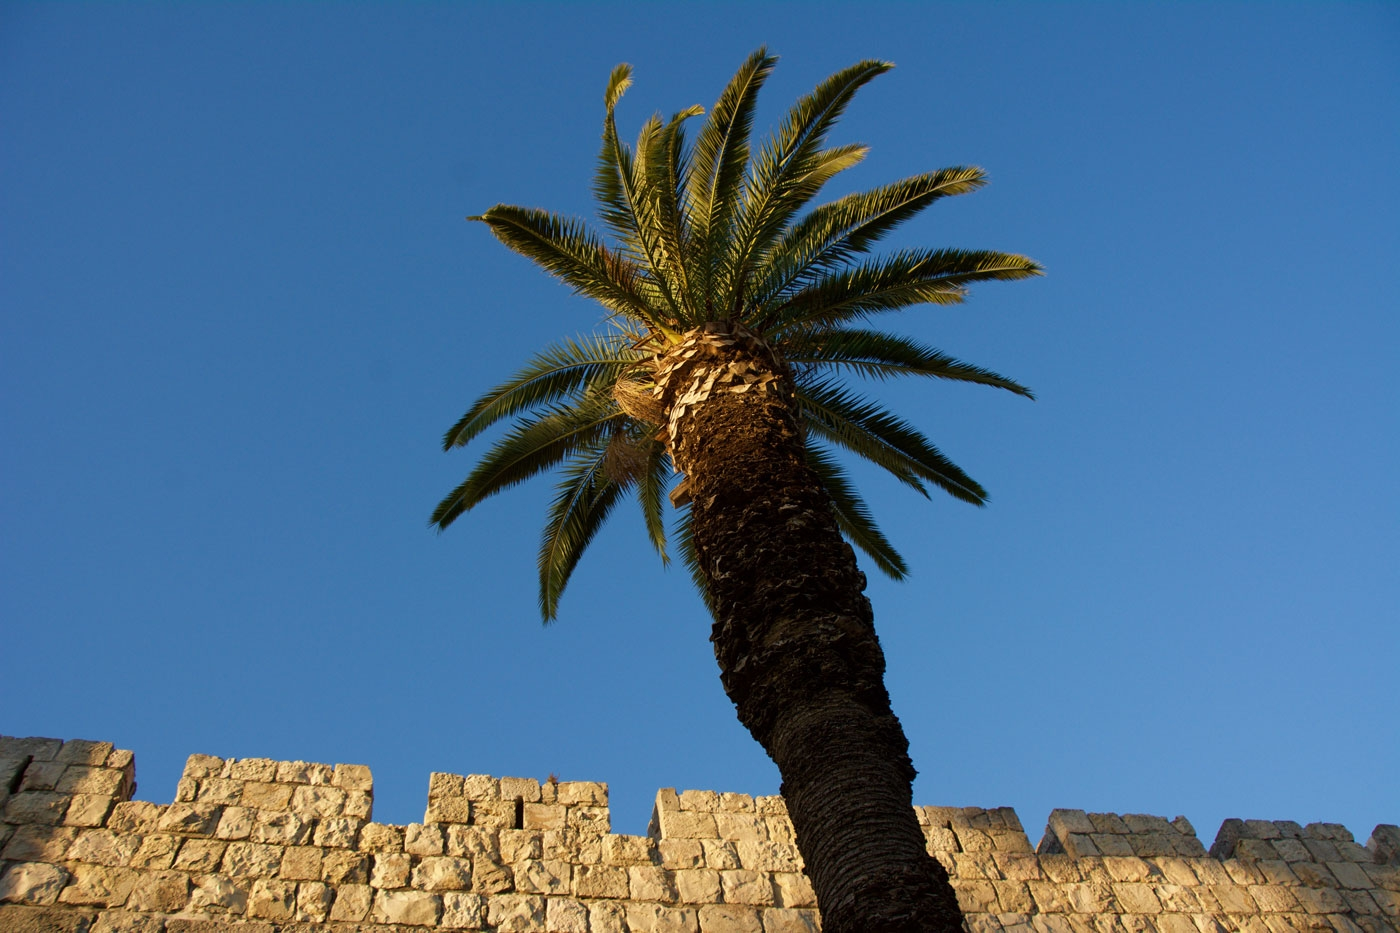 Ottoman Walls (build in the 1500's) surround the Old City of Jerusalem